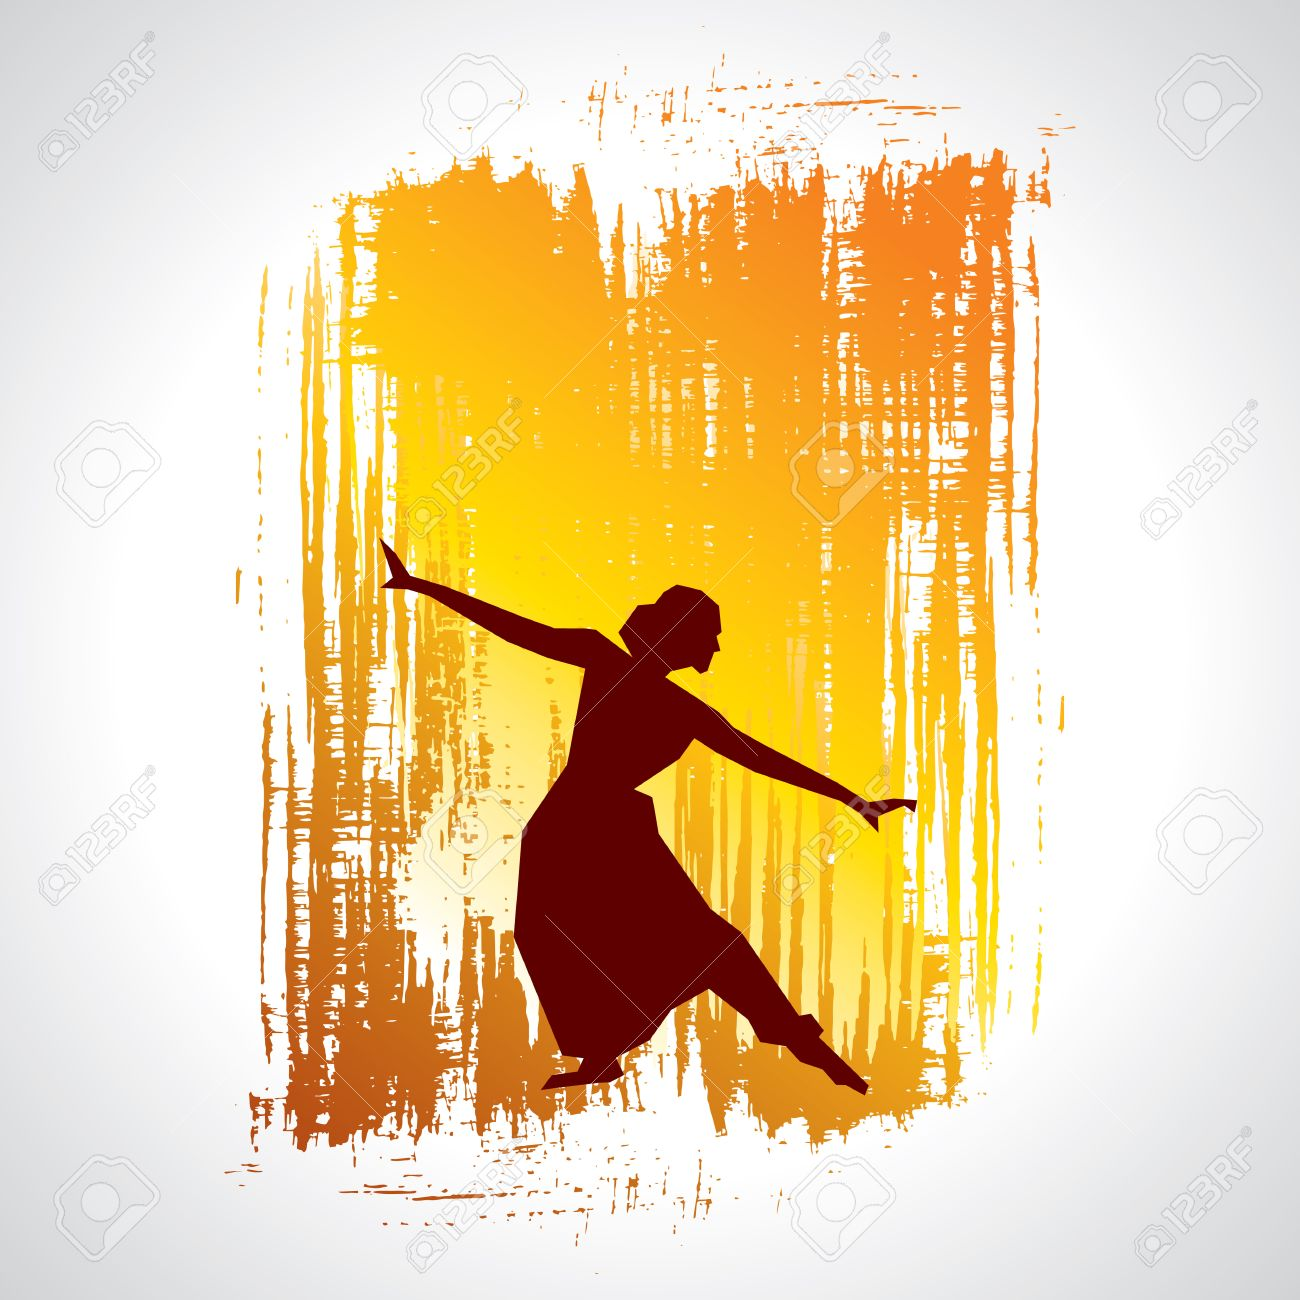 Illustration Of Indian Classical Dancer Royalty Free Cliparts Vectors And Stock Illustration Image 37109118